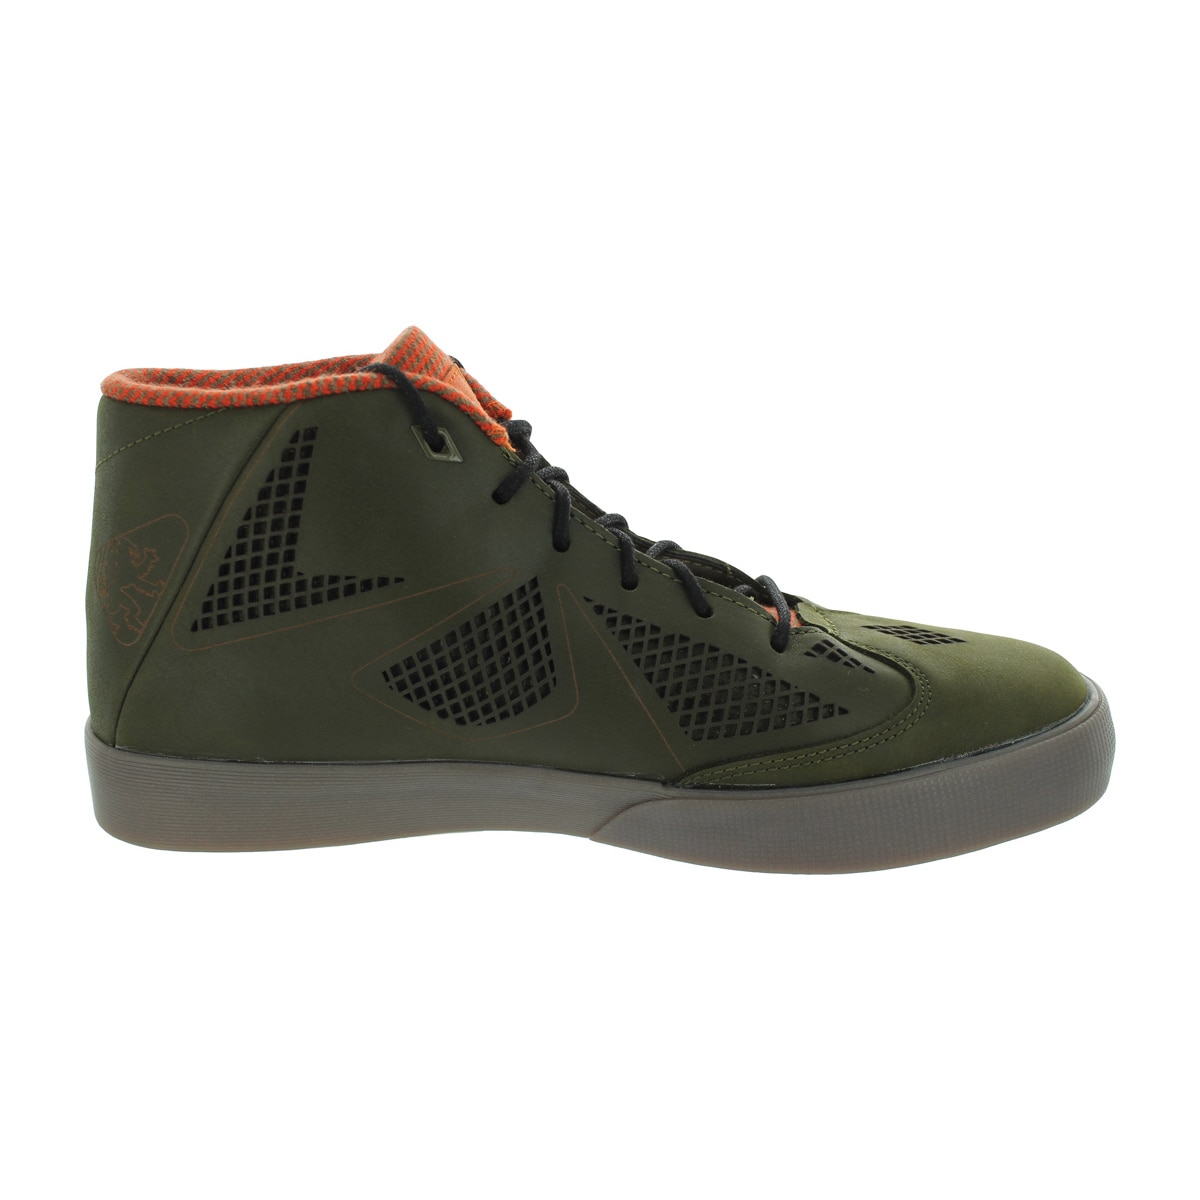 703d5c030309 Shop Nike Men s Lebron X NSW Lifestyle Green Leather Casual Shoe - Free  Shipping Today - Overstock - 12115673